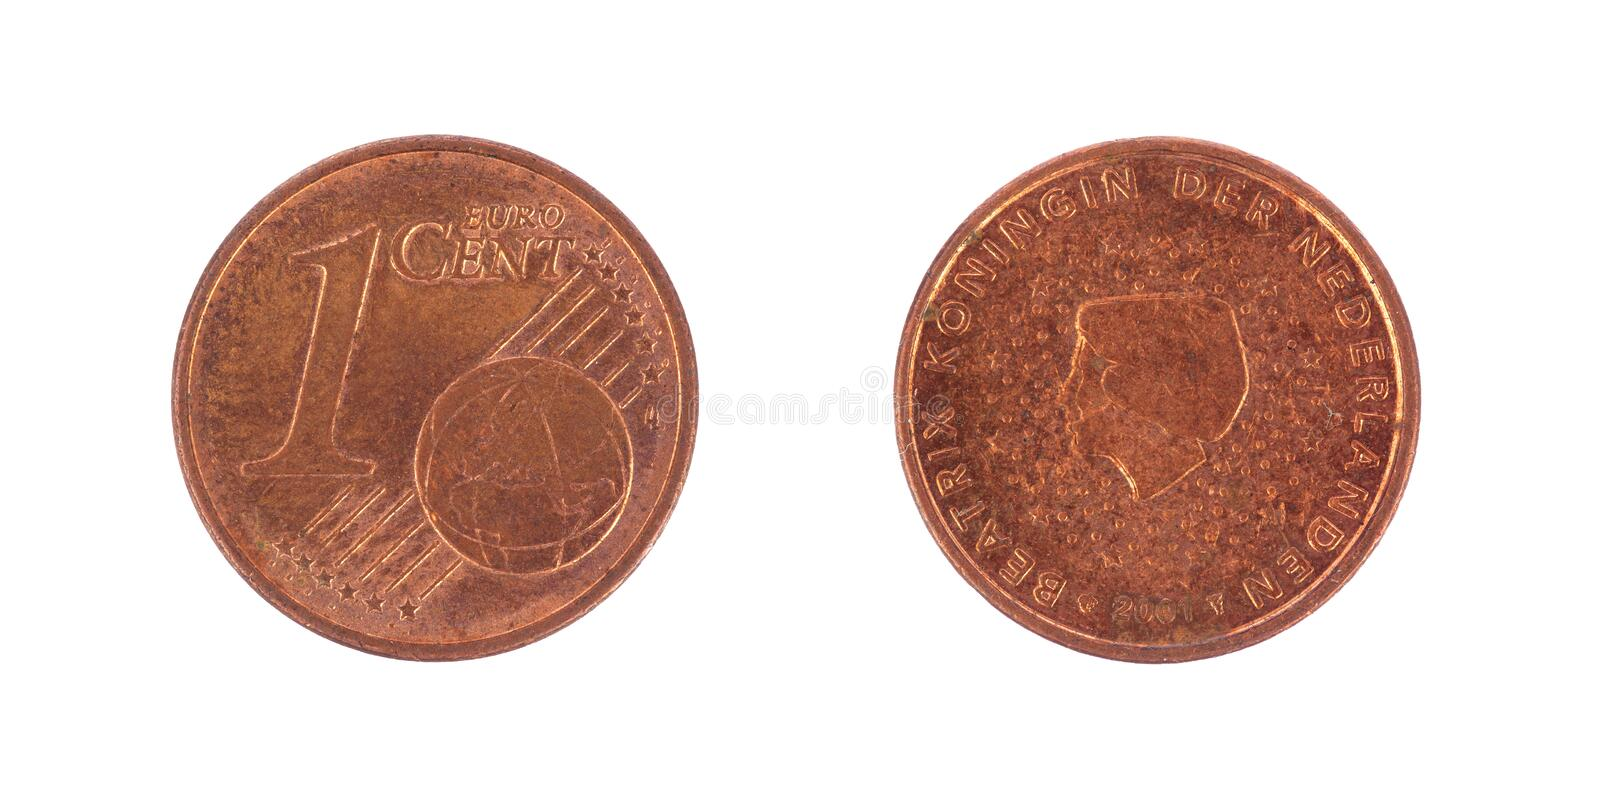 One euro cents coin. Isolated on white royalty free stock image